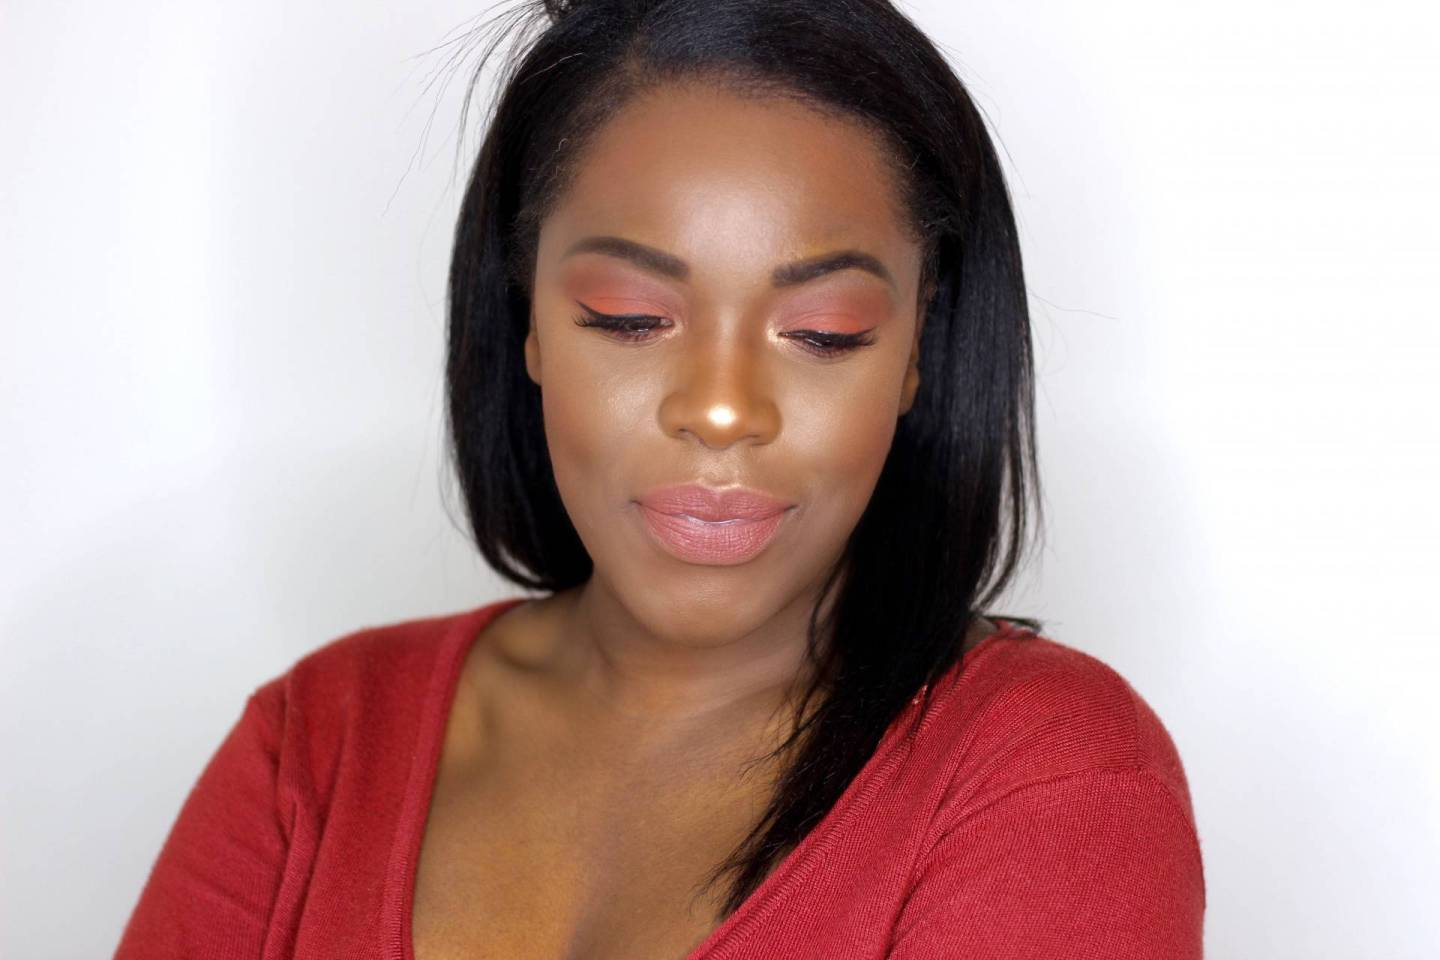 PEACHY & CREAM MAKEUP POUR LA SAINT VALENTIN